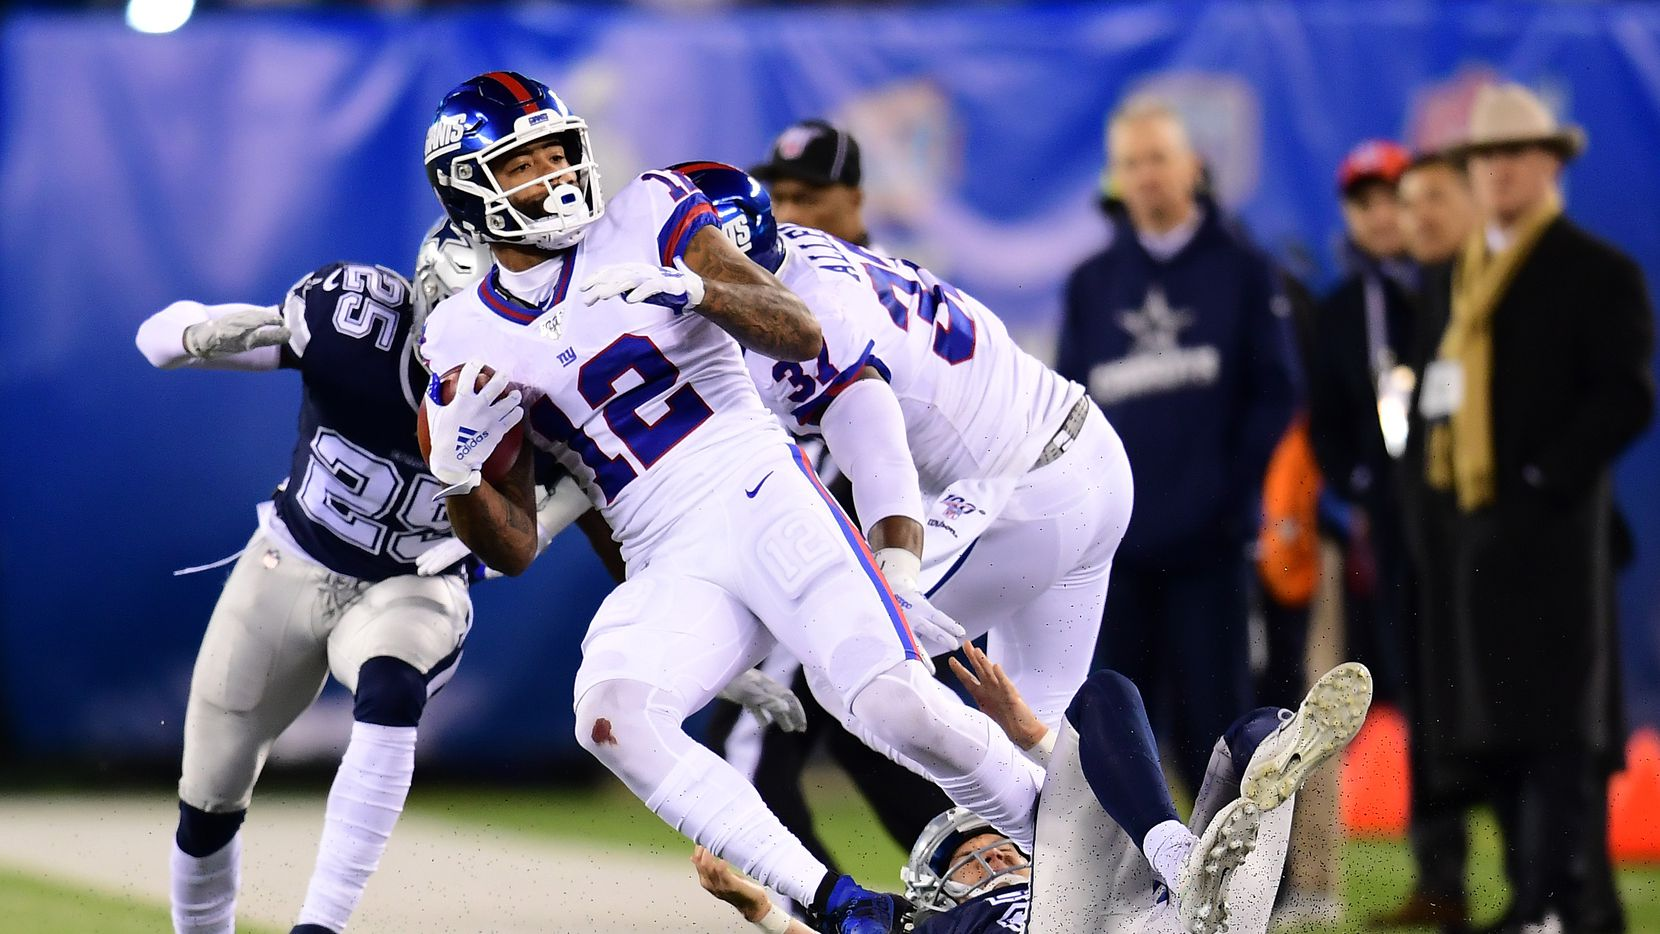 EAST RUTHERFORD, NEW JERSEY - NOVEMBER 04: Cody Latimer #12 of the New York Giants is tackled by Brett Maher #2 and Xavier Woods #25 of the Dallas Cowboys in the second half of their game at MetLife Stadium on November 04, 2019 in East Rutherford, New Jersey. (Photo by Emilee Chinn/Getty Images)